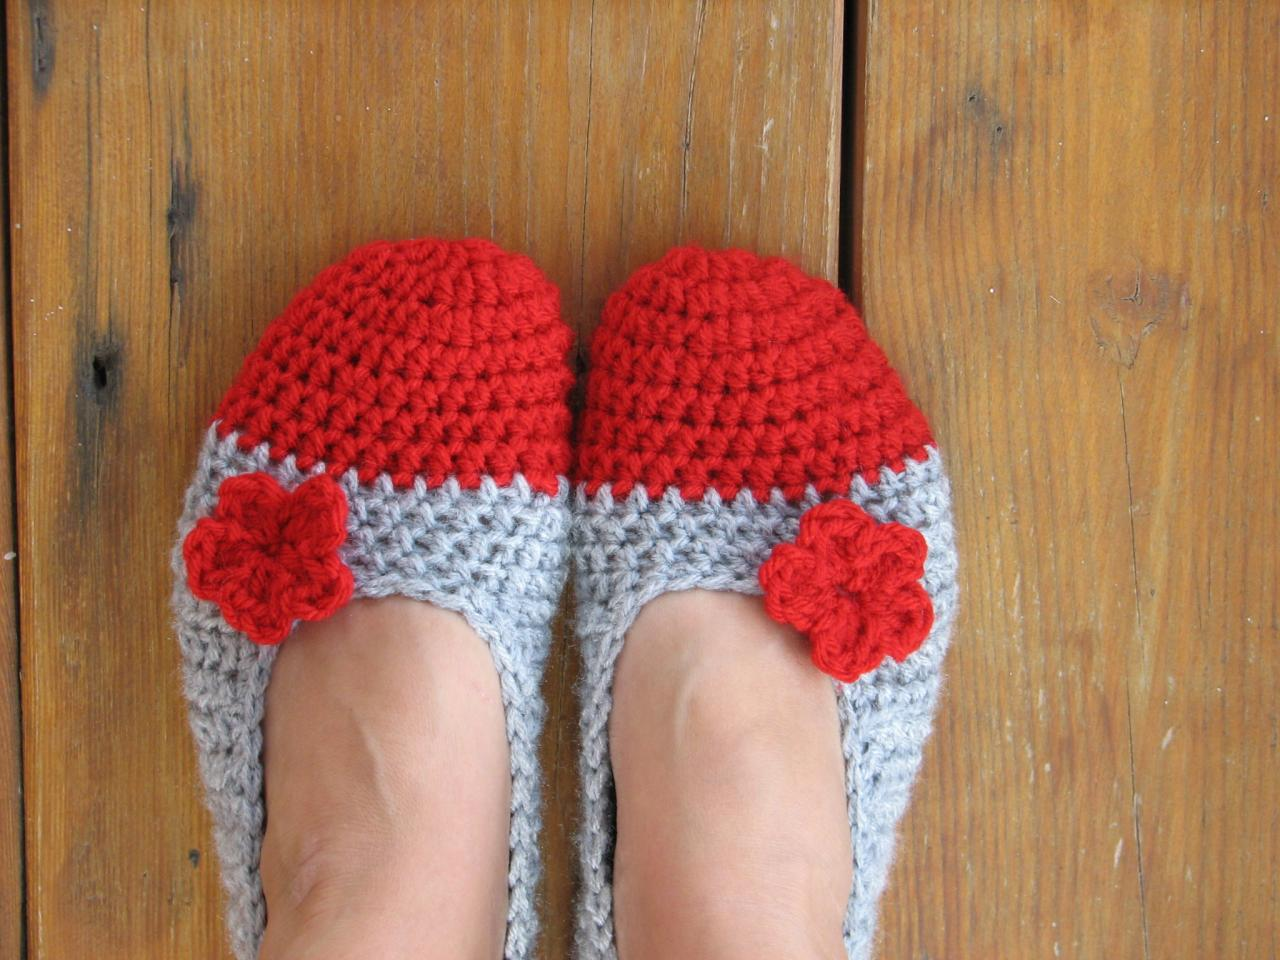 Crochet Women Slippers - Accessories, Adult Crochet Slippers, Home Shoes, Crochet Women Slippers on Luulla